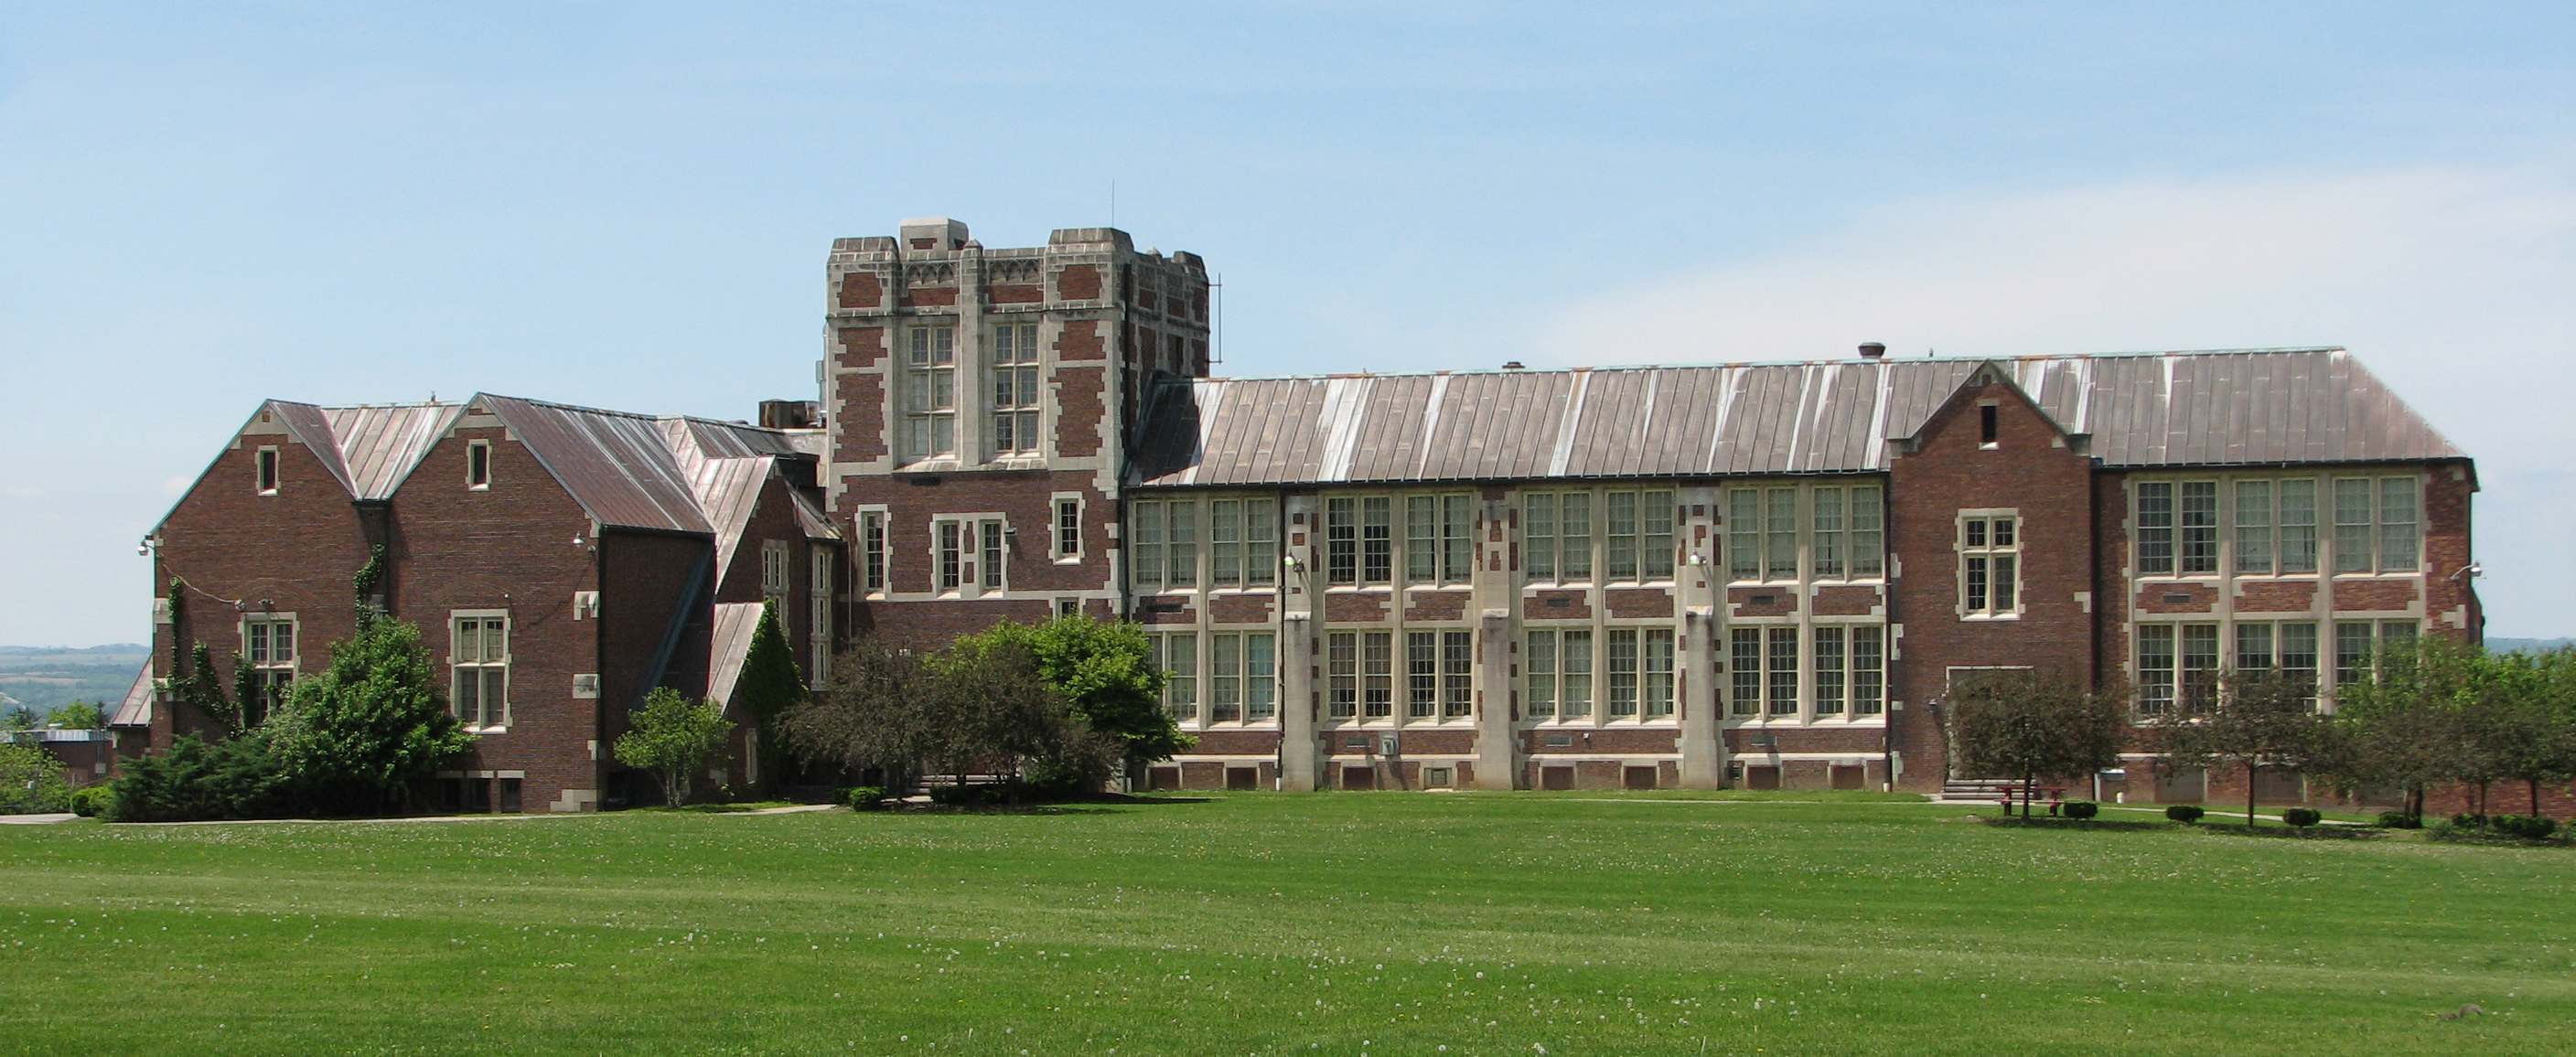 Description Doty Building at SUNY Geneseo.jpg